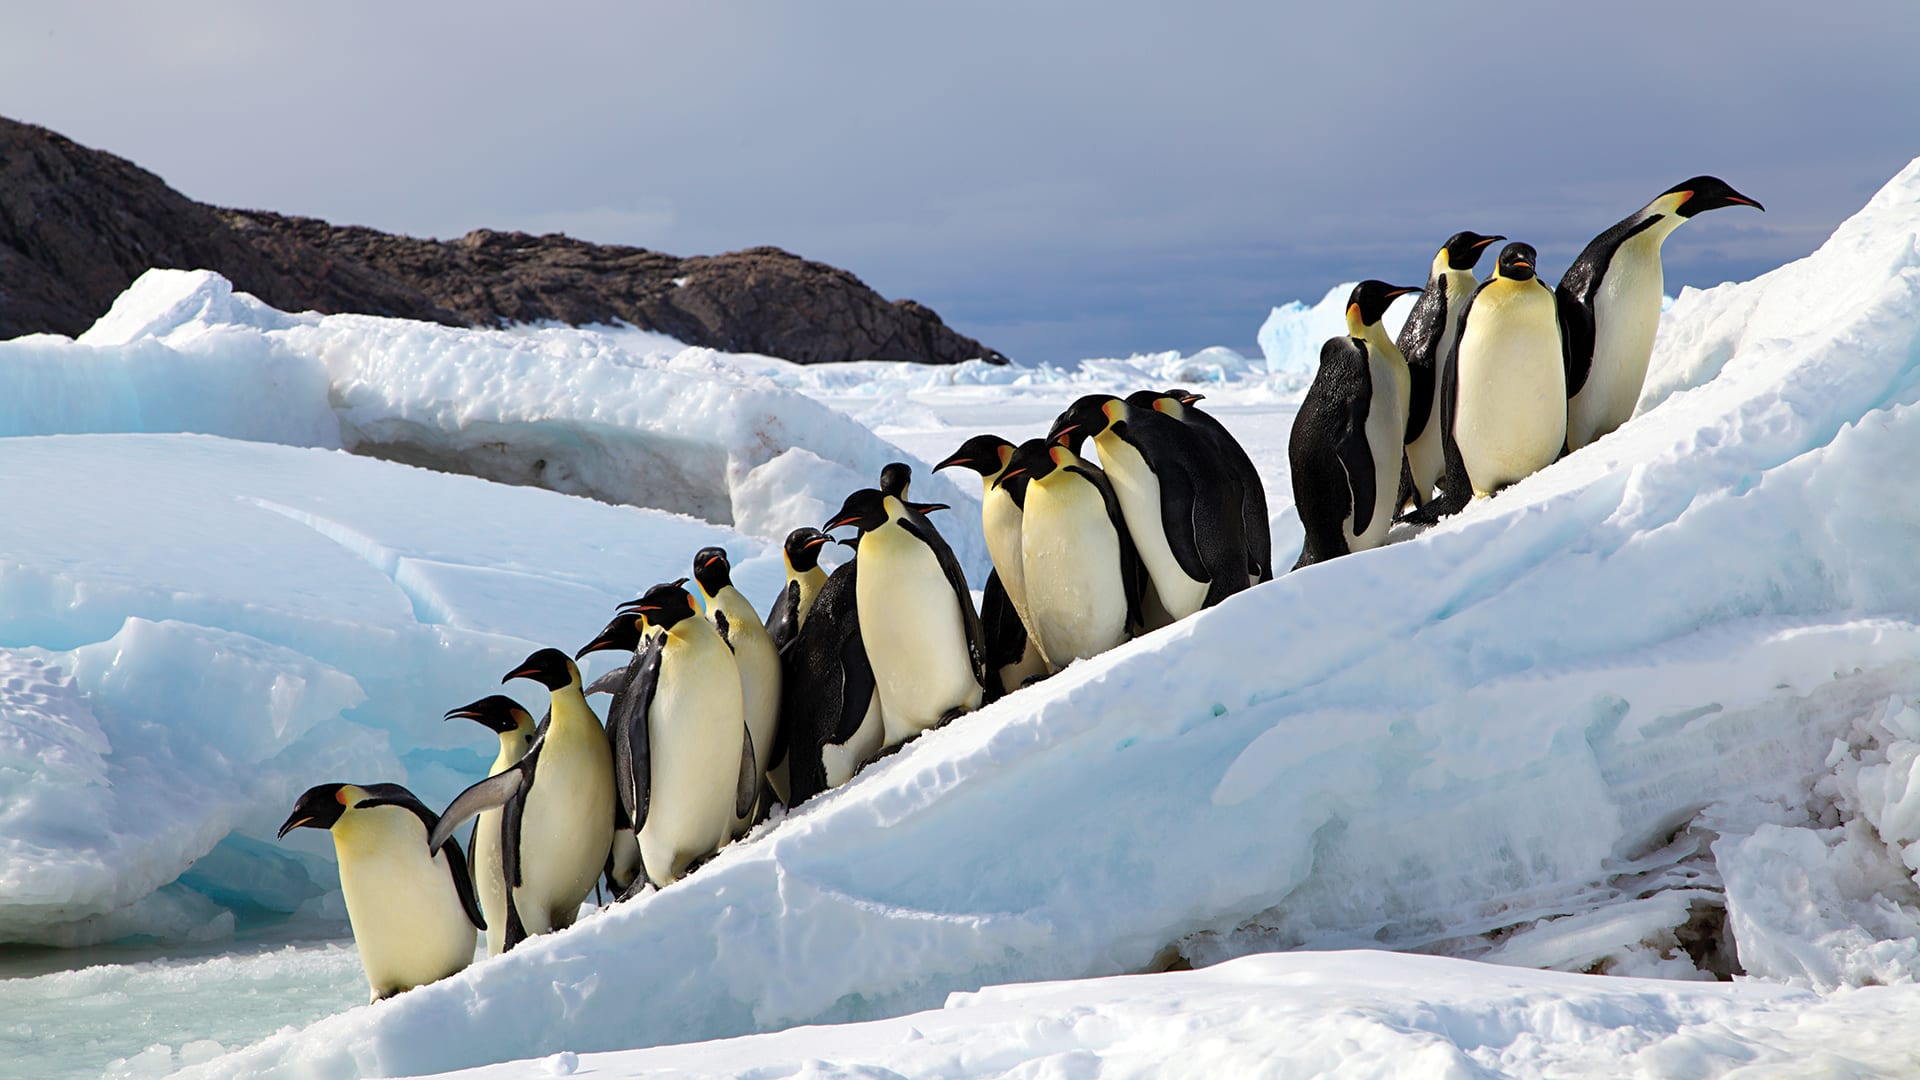 Emperor penguins amble to around the edges of a precarious ice sheet. (Photo by Stephanie Jenouvrier, ©Woods Hole Oceanographic Institution)